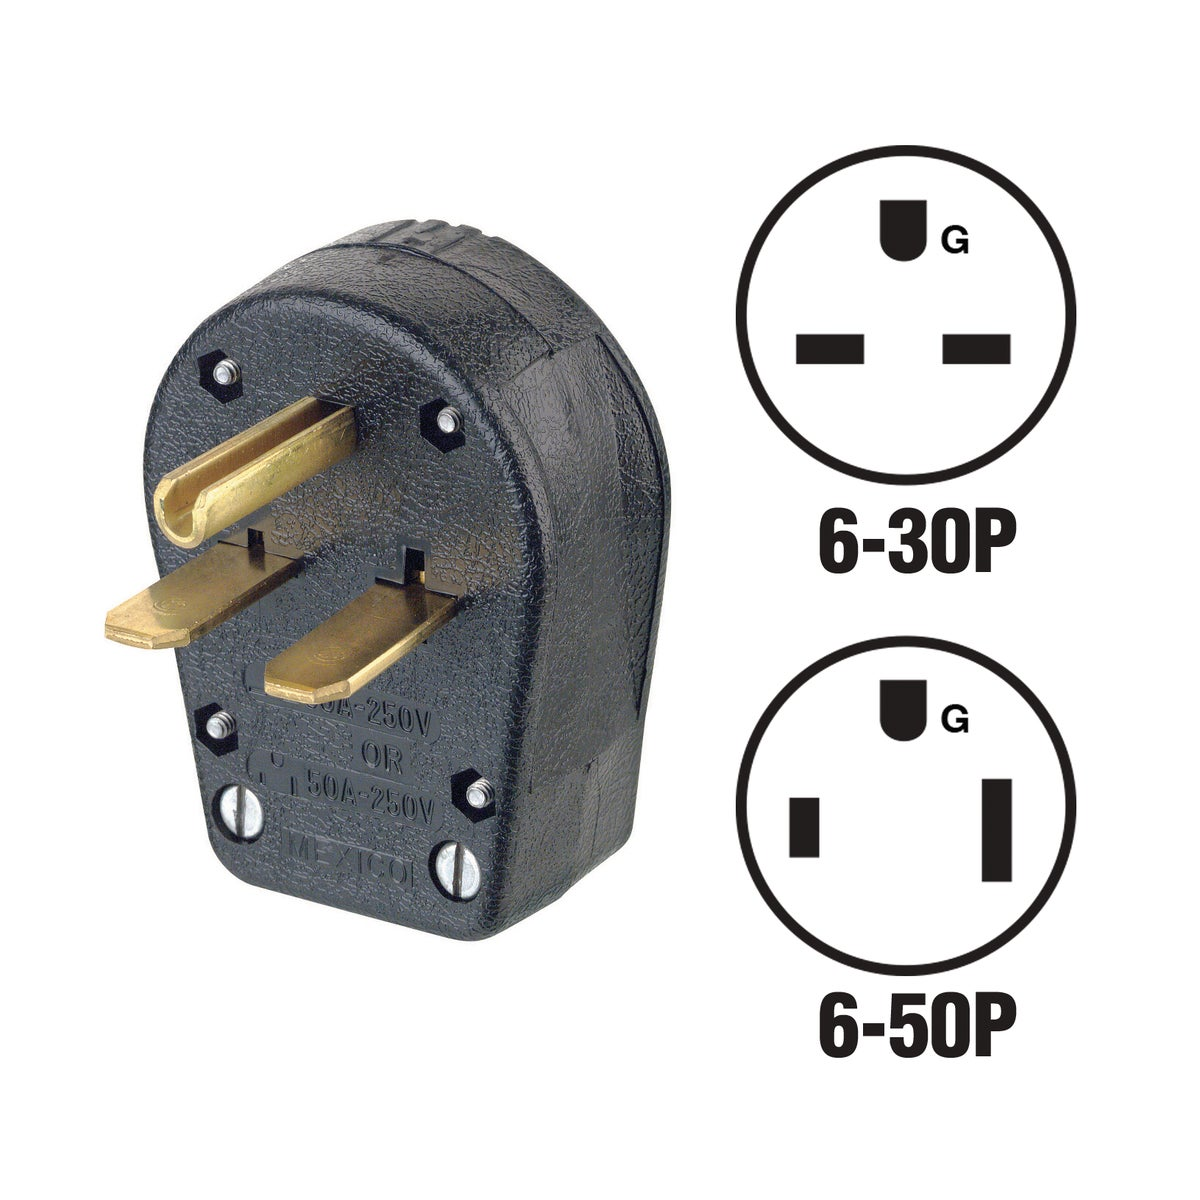 30A/50A DUAL PLUG - R50-931 by Leviton Mfg Co